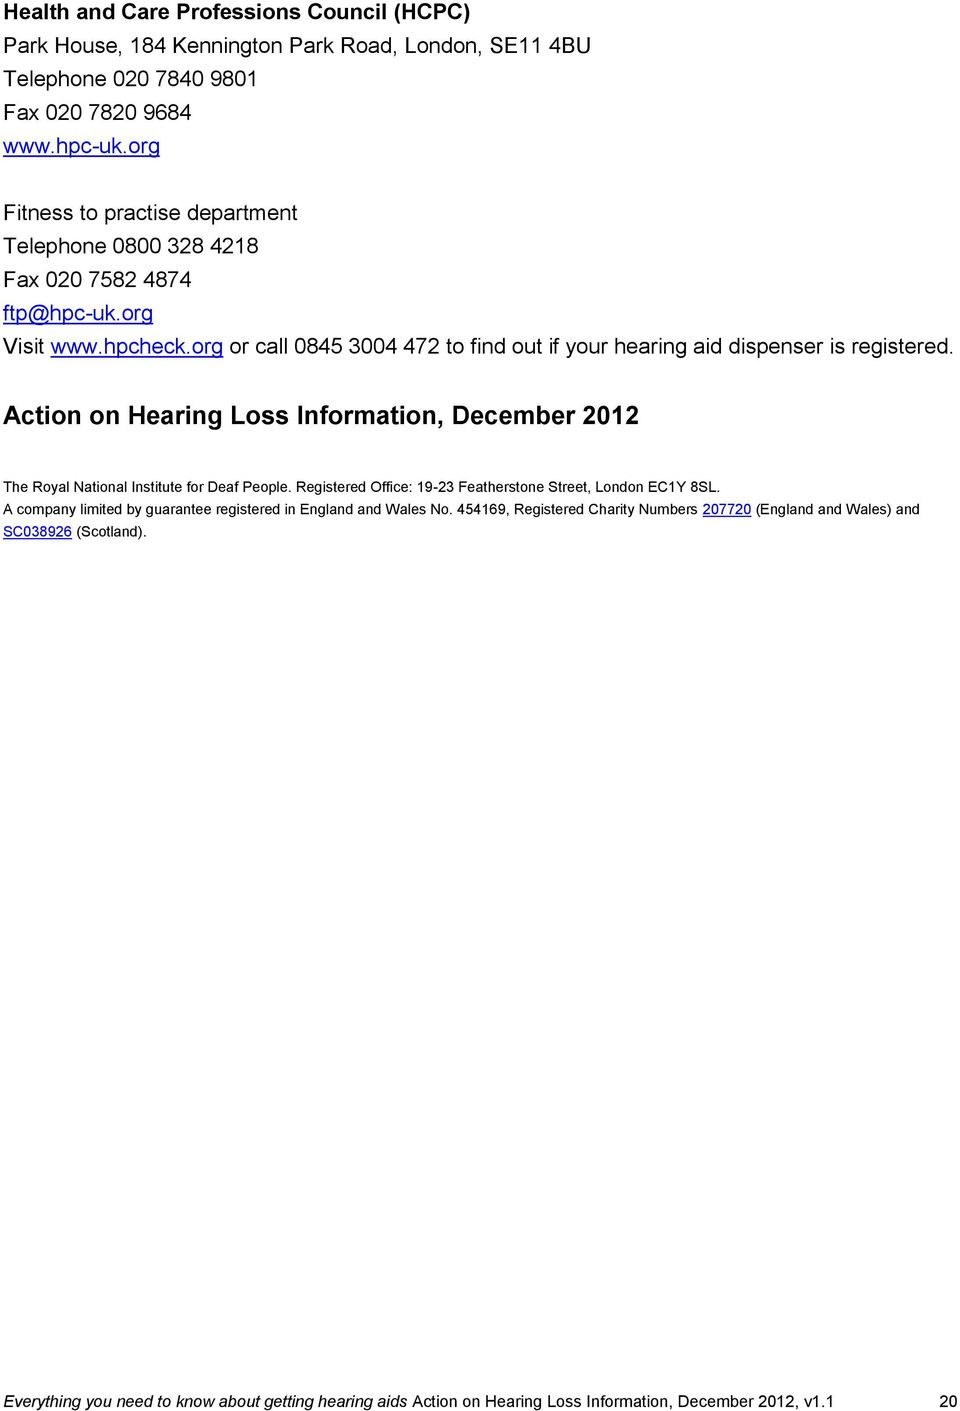 Action on Hearing Loss Information, December 2012 The Royal National Institute for Deaf People. Registered Office: 19-23 Featherstone Street, London EC1Y 8SL.